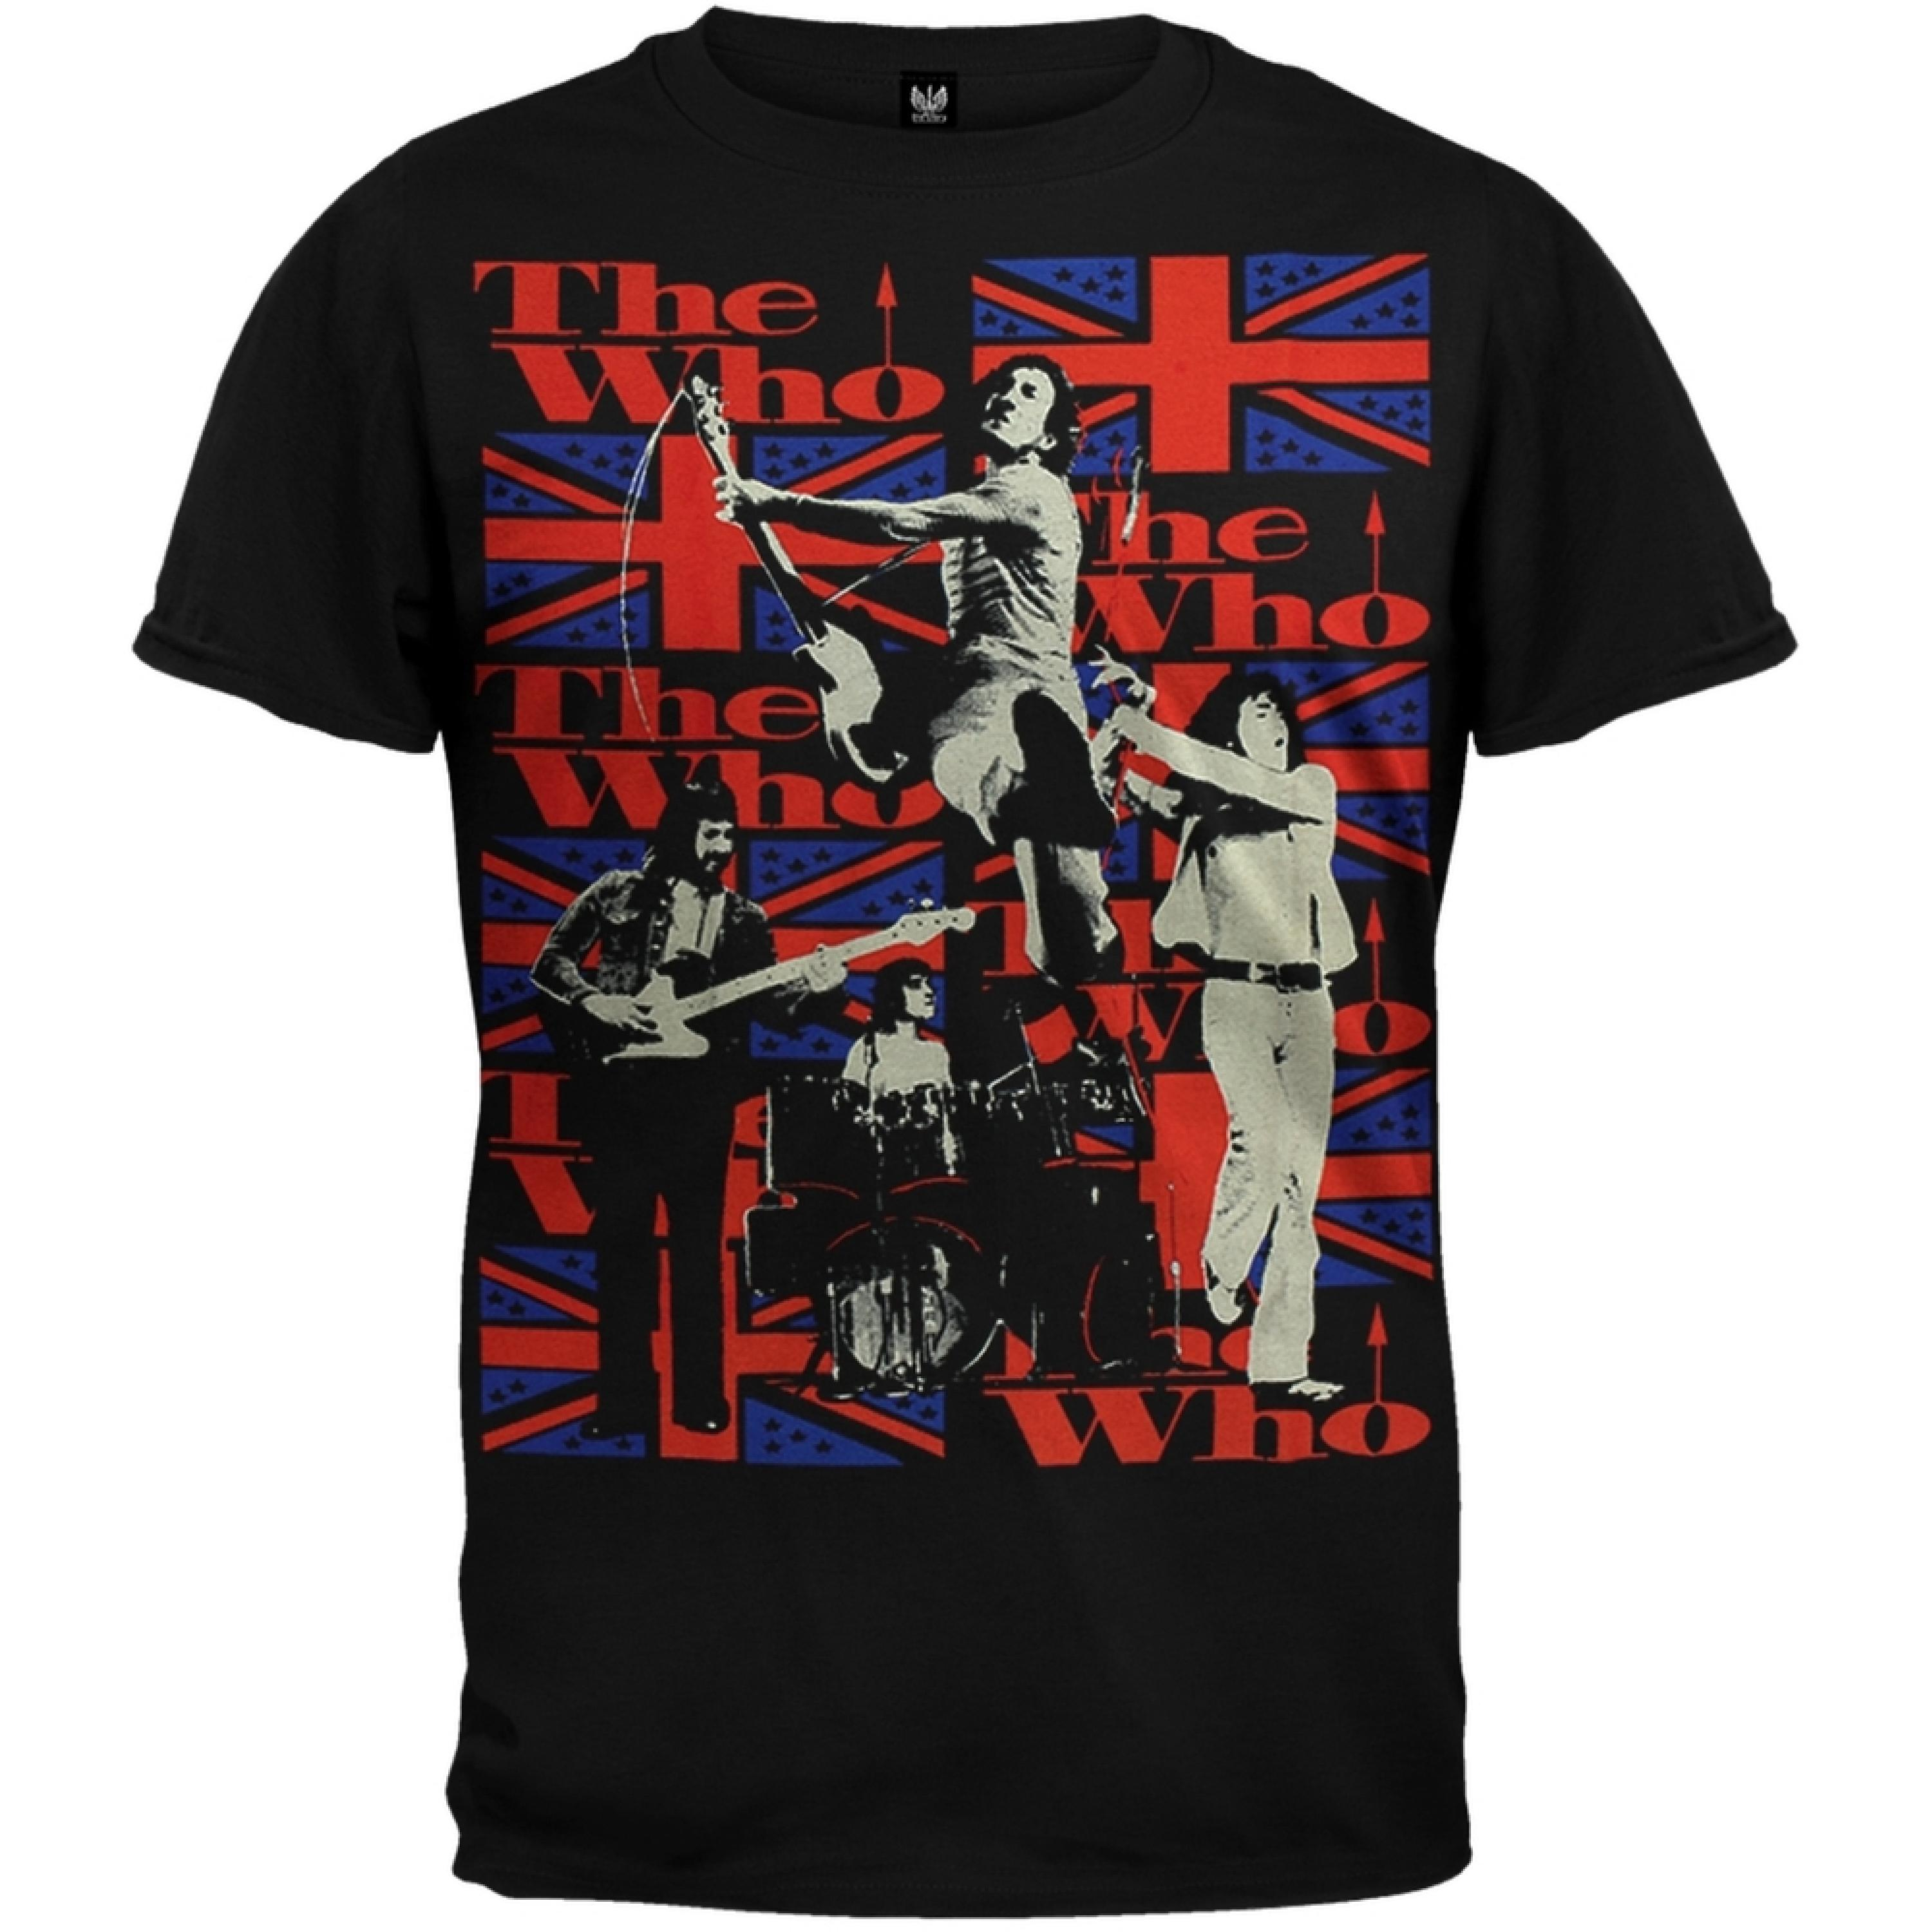 The Who - Sensation T-Shirt